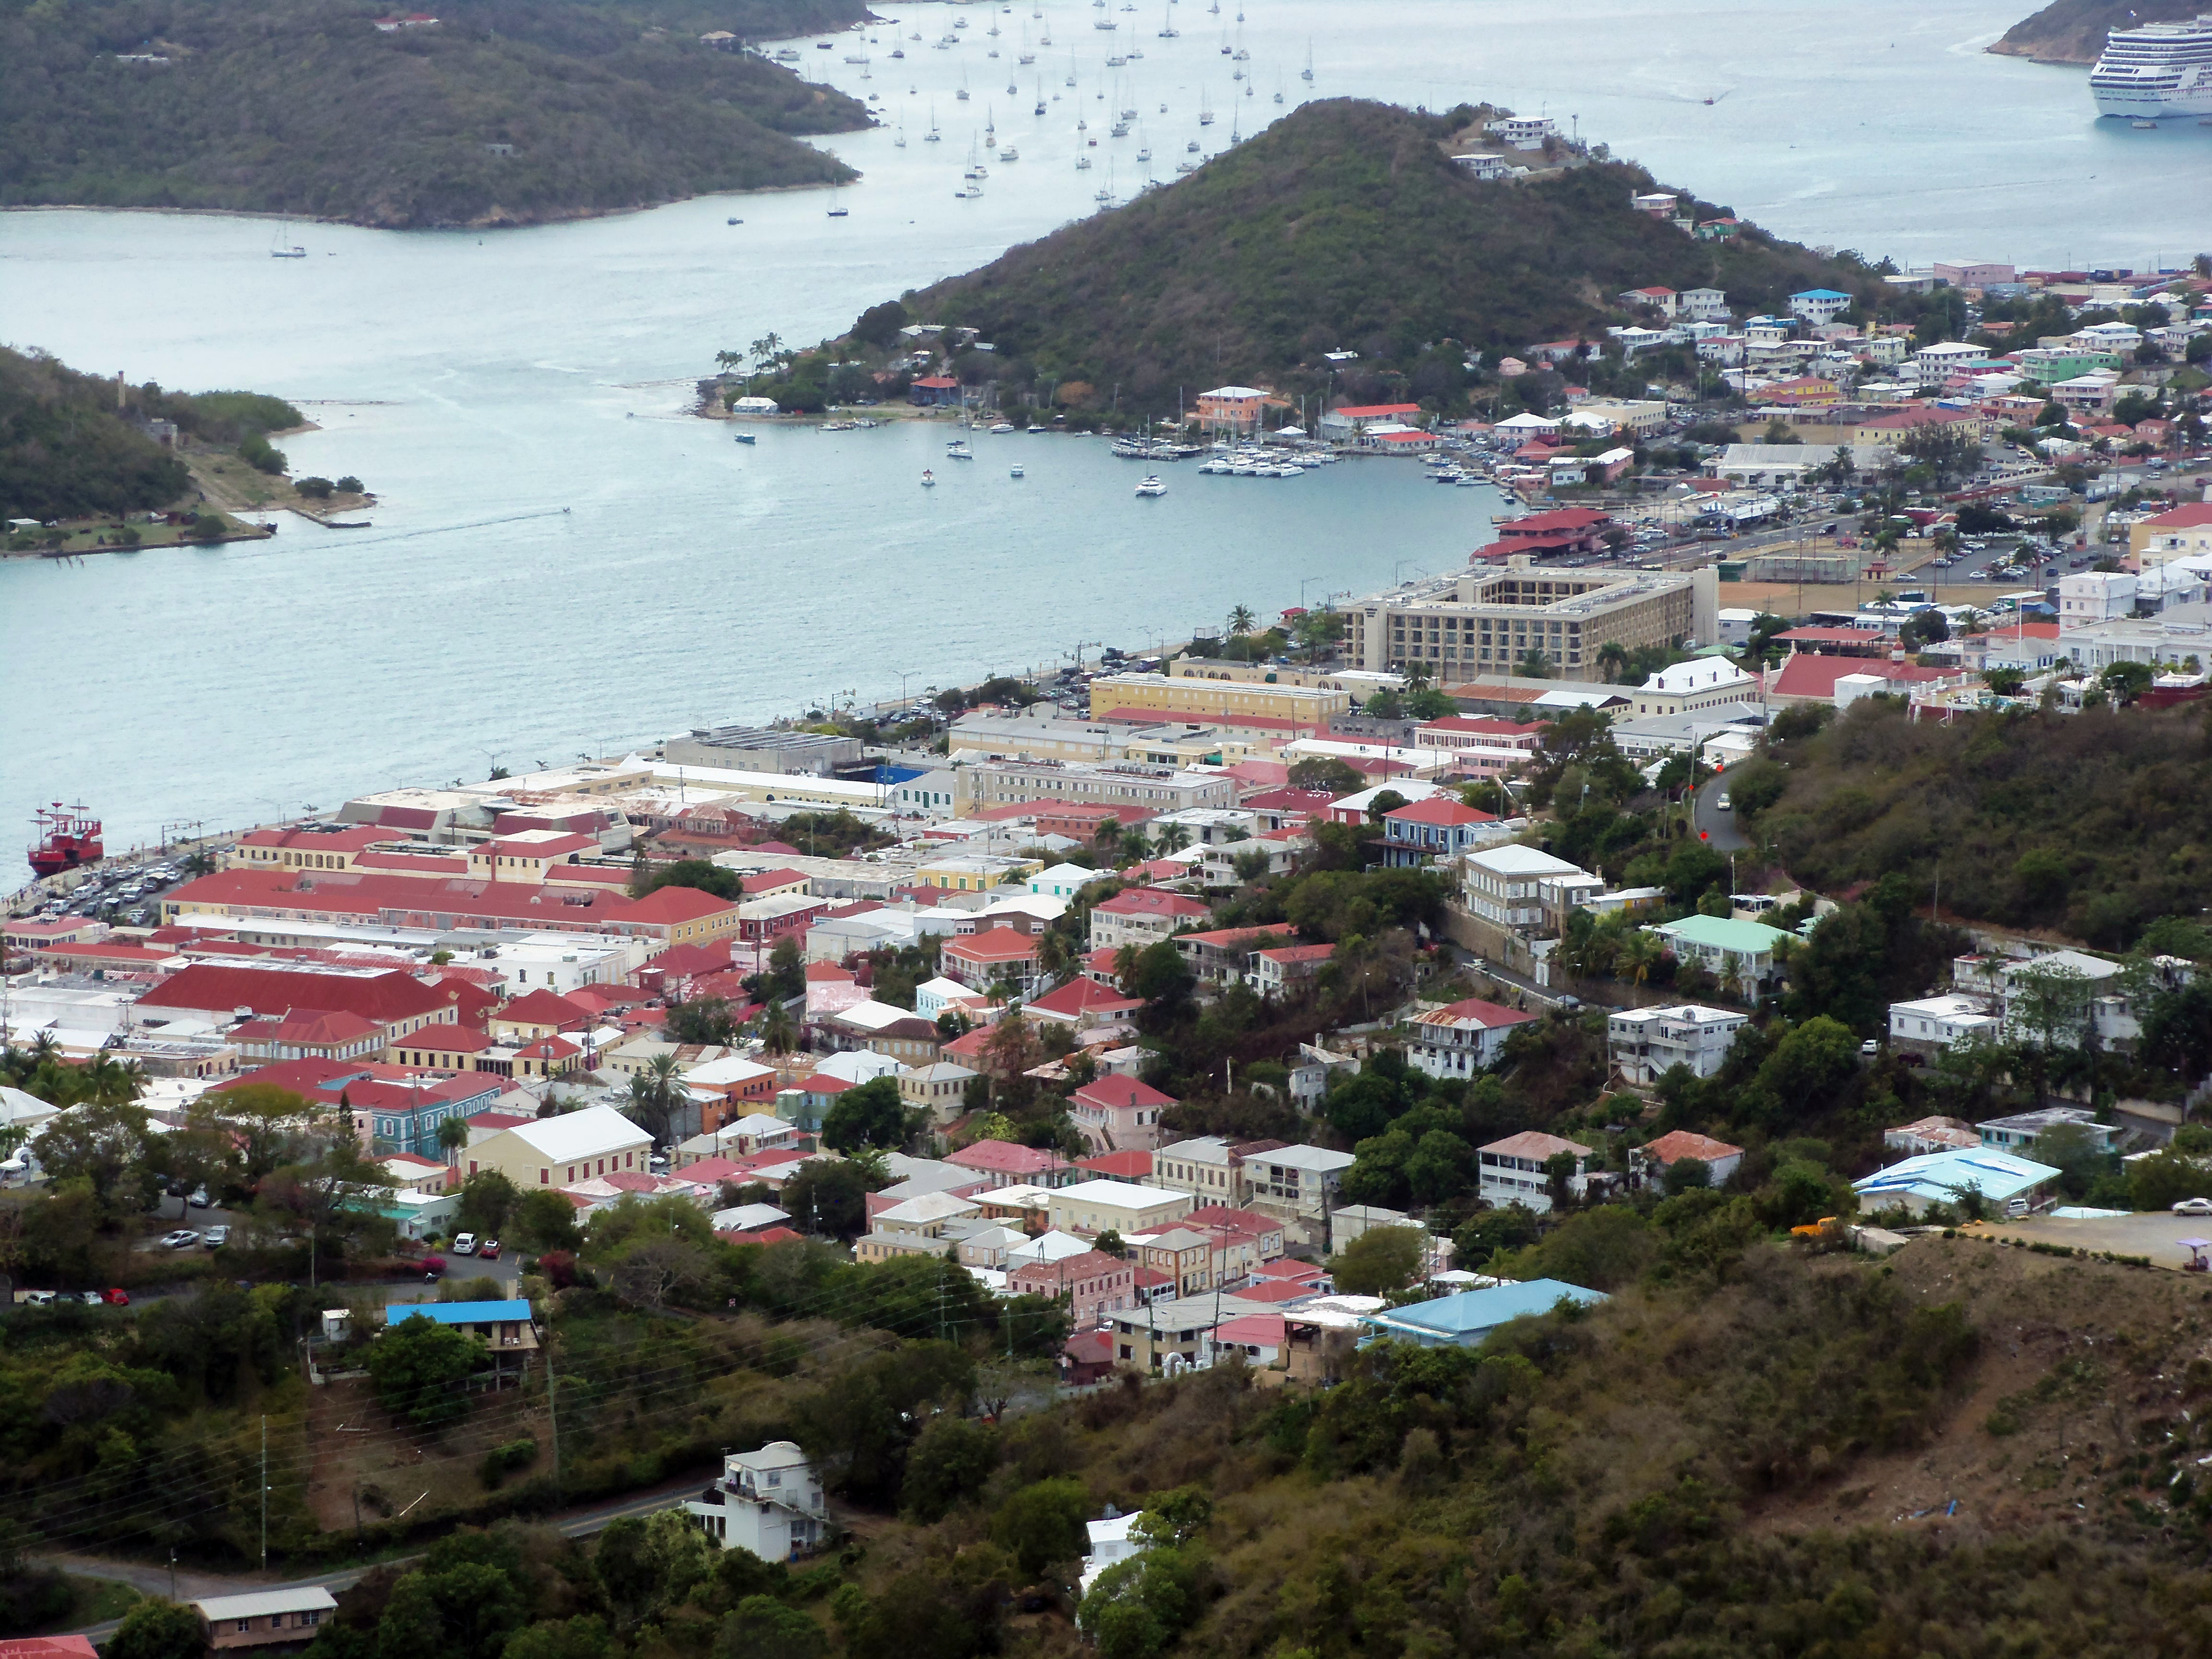 2013 in the united states virgin islands